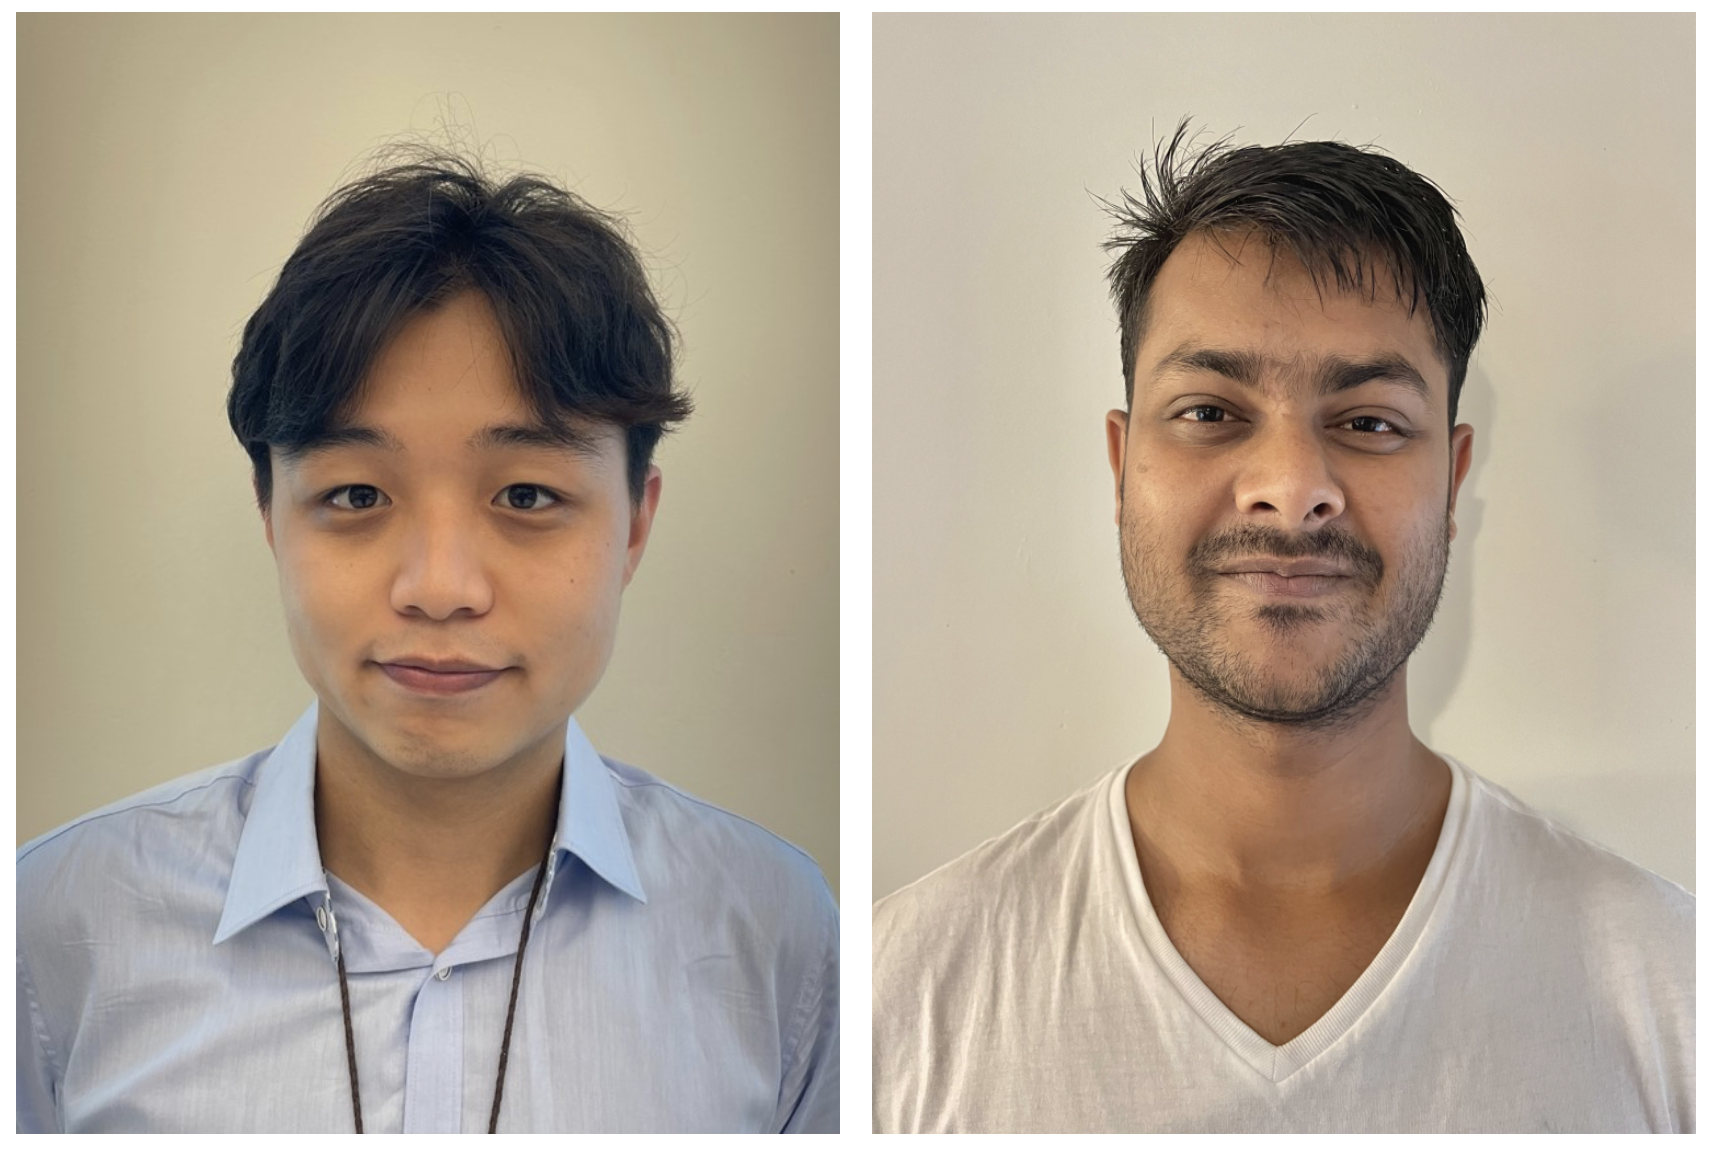 New doctoral trainees Jae Young Park and Ankit Shah join LIMR!